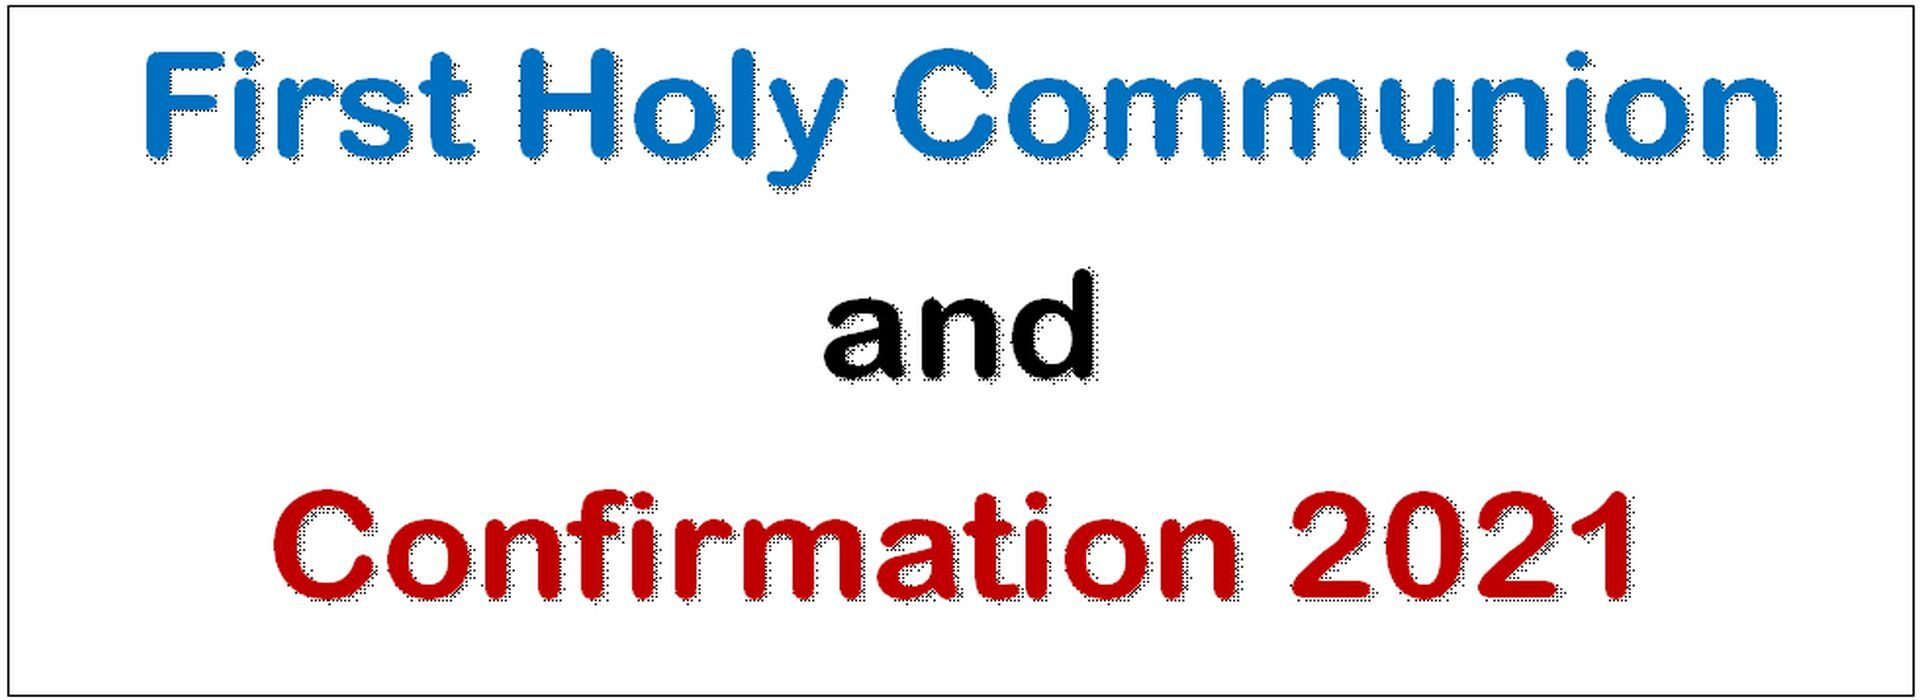 First Communion & Confirmation 2021